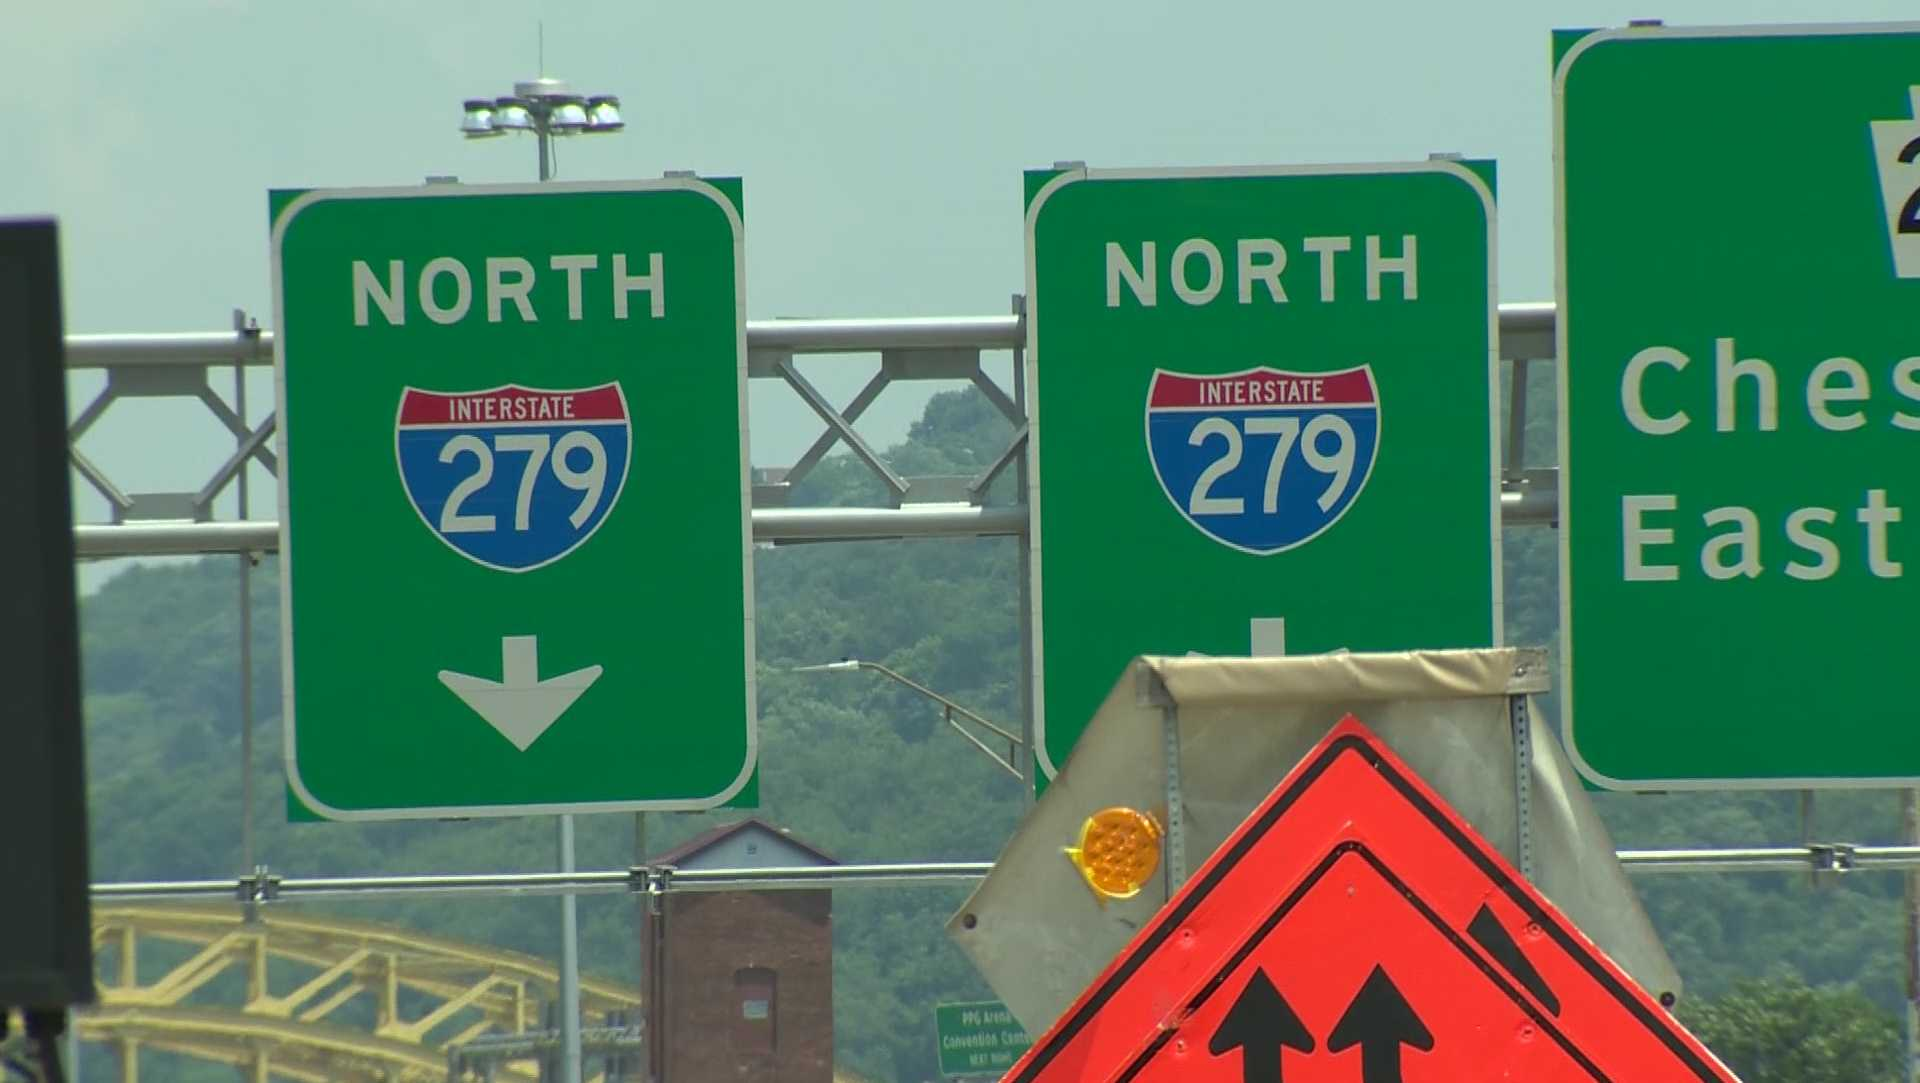 Interstate 279 - Parkway North